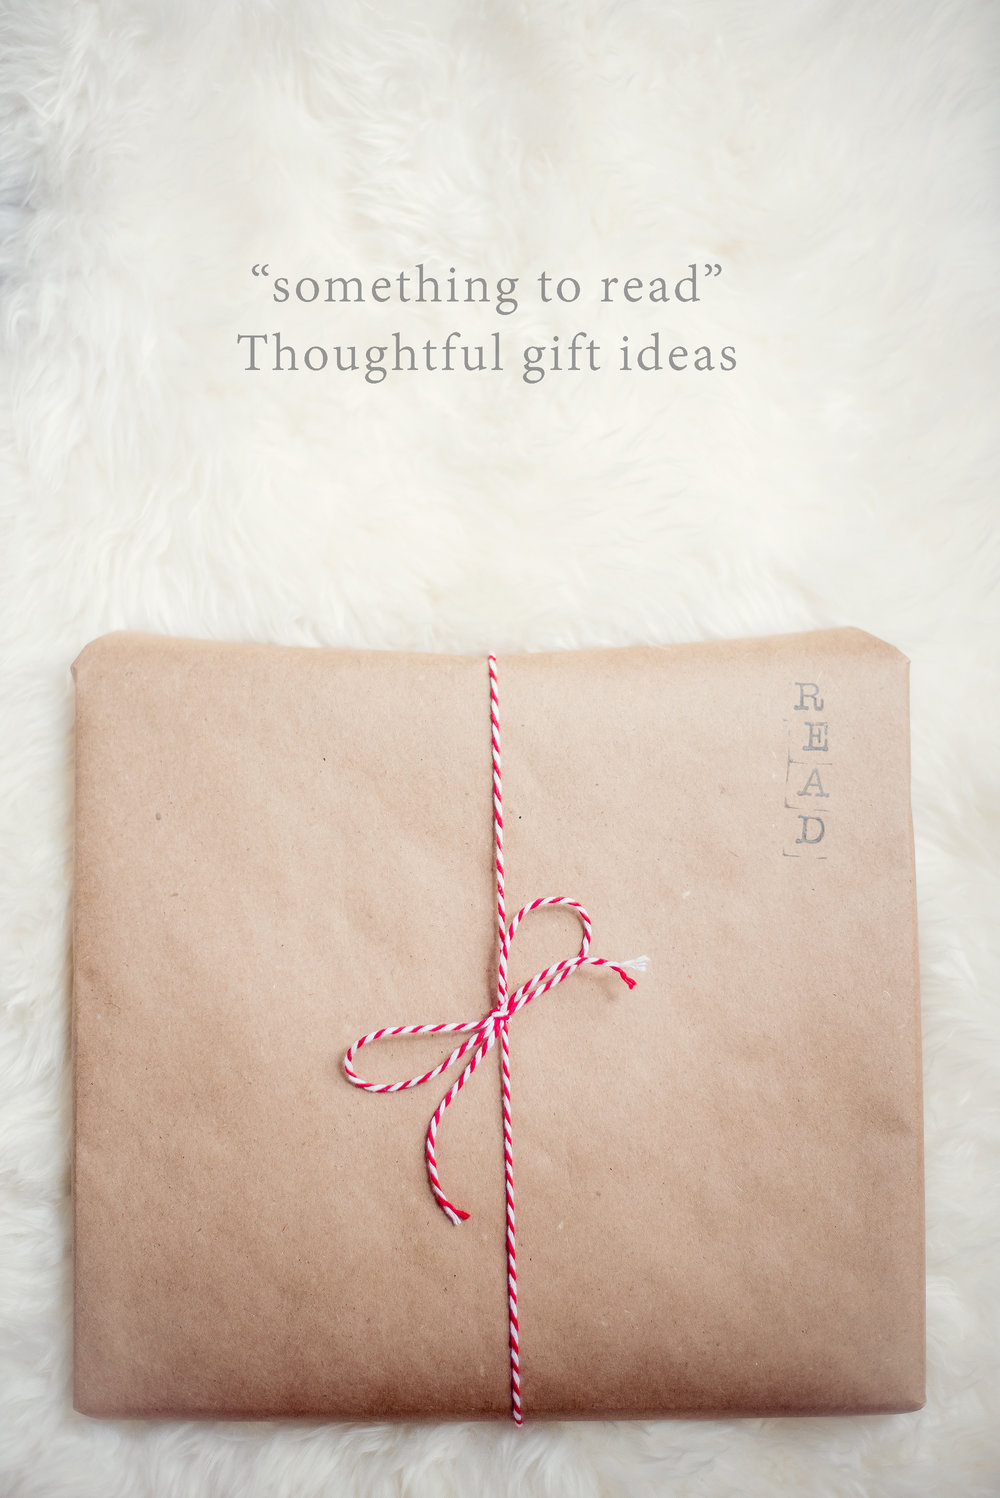 Thoughtful gift ideas with 4 gifts ~ something to read ~ Lovely Matters by Heather Walker